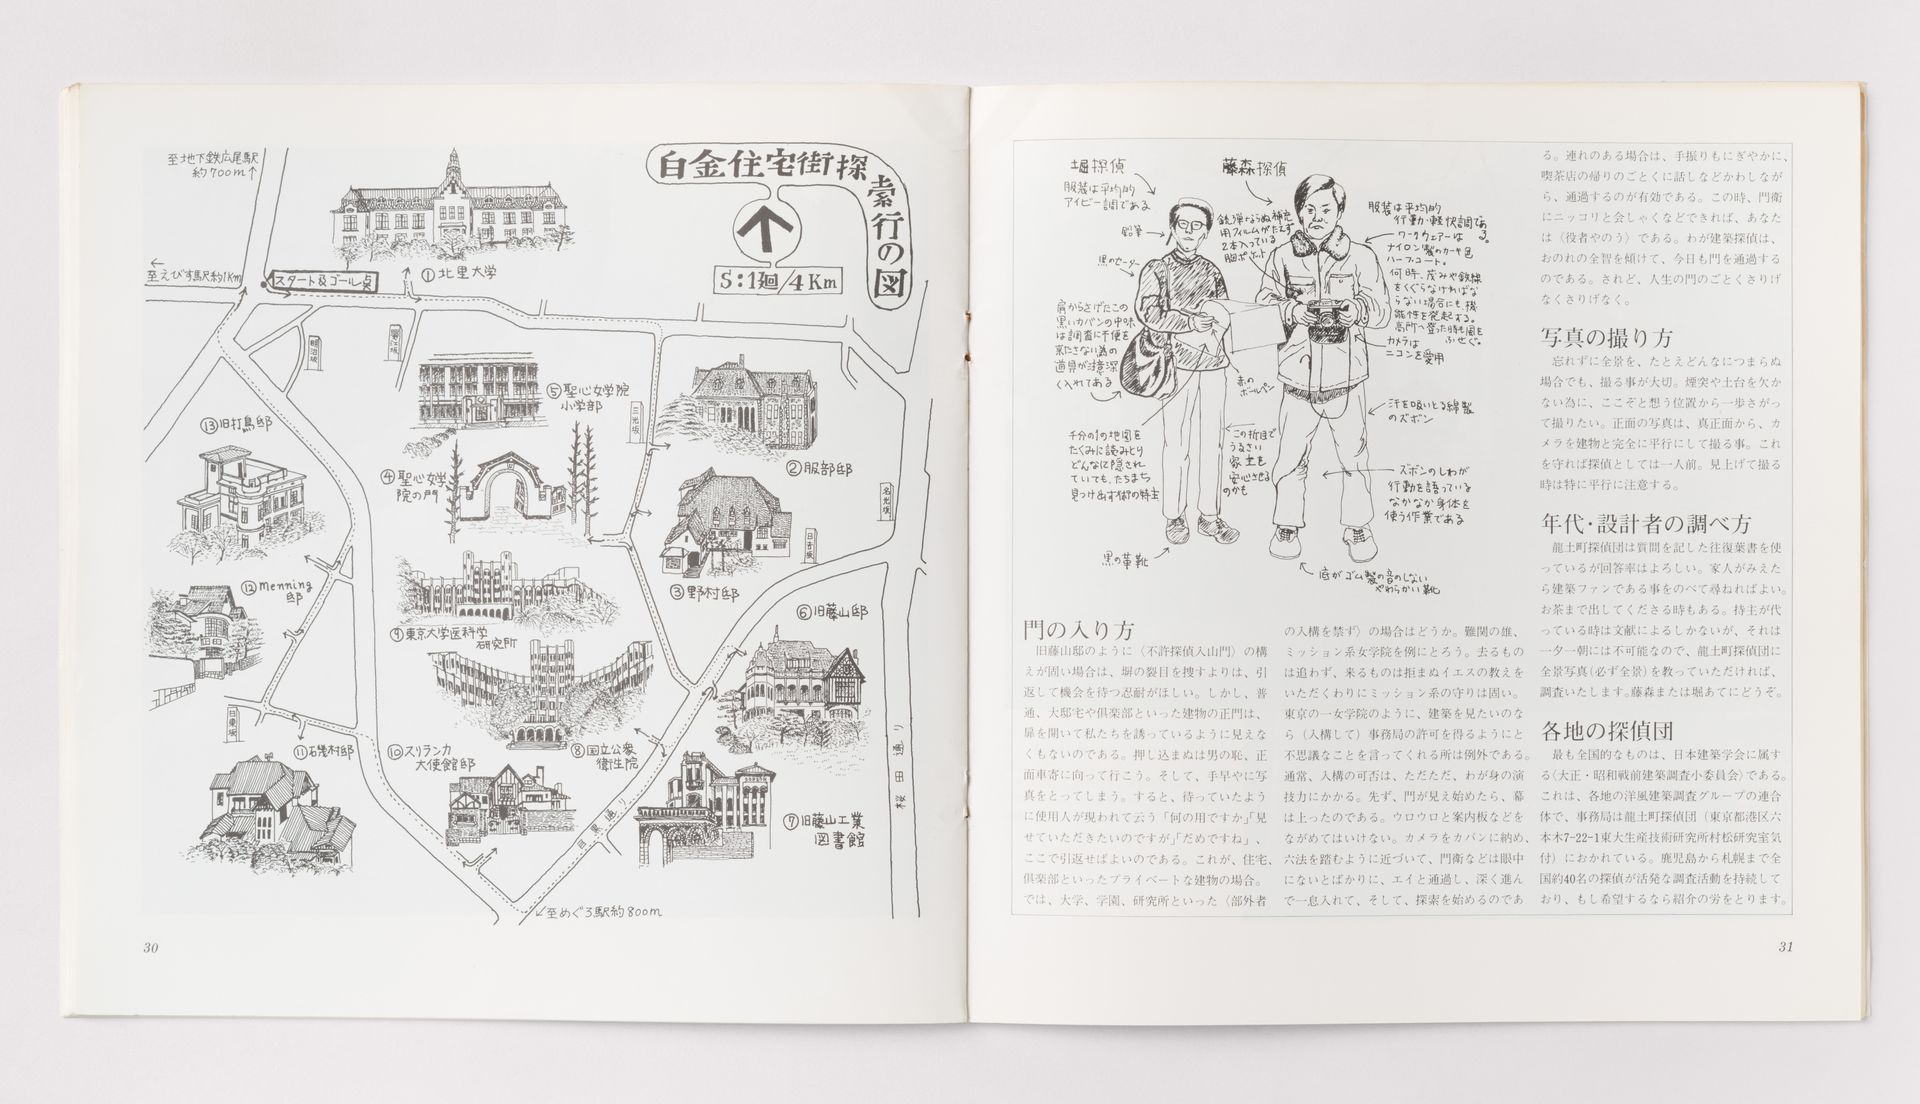 The Architectural Detective Agency (ADA) Was Founded In 1974 By Architect Historians  Terunobu Fujimori And Takeyoshi Hori While They Were Graduate Students.